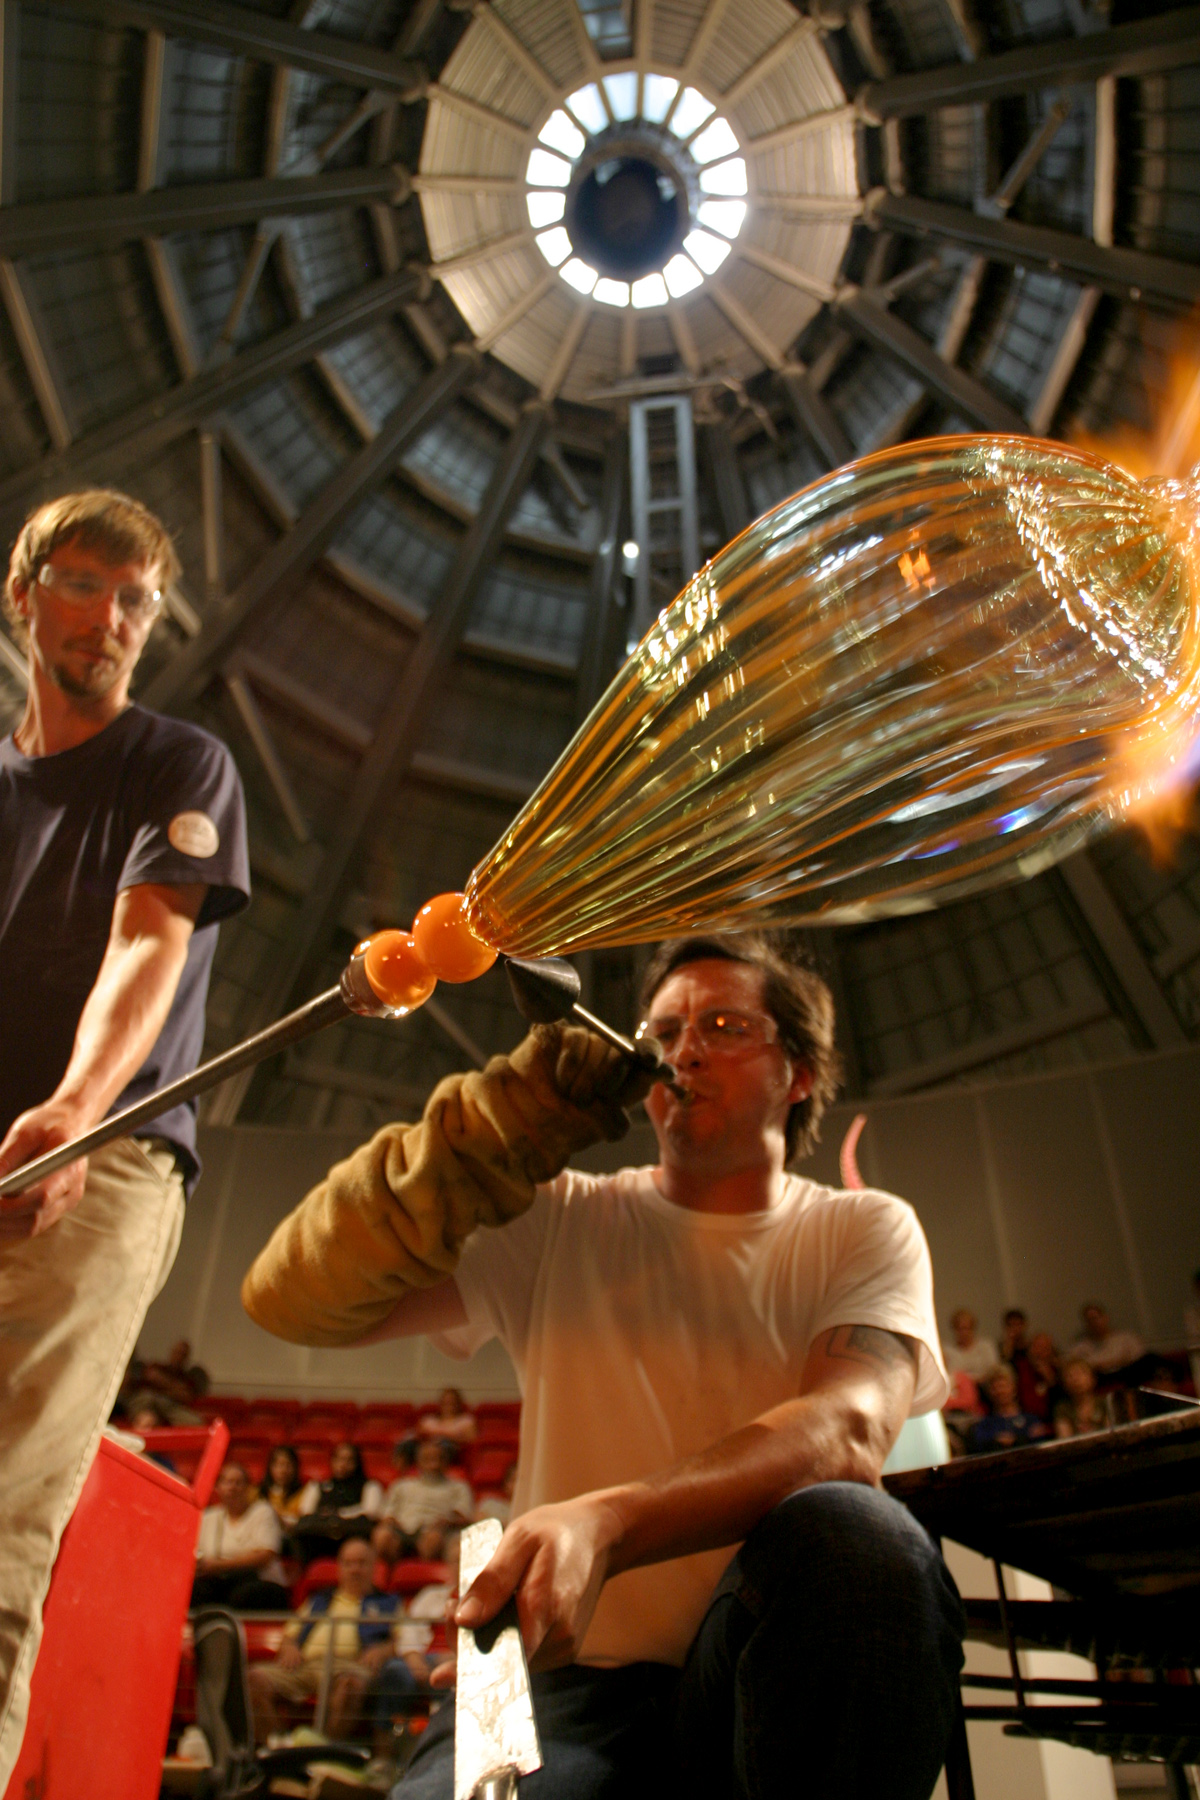 Visiting Artist Jay Macdonell at work in the Museum of Glass Hot Shop, Photo courtesy of Museum of Glass